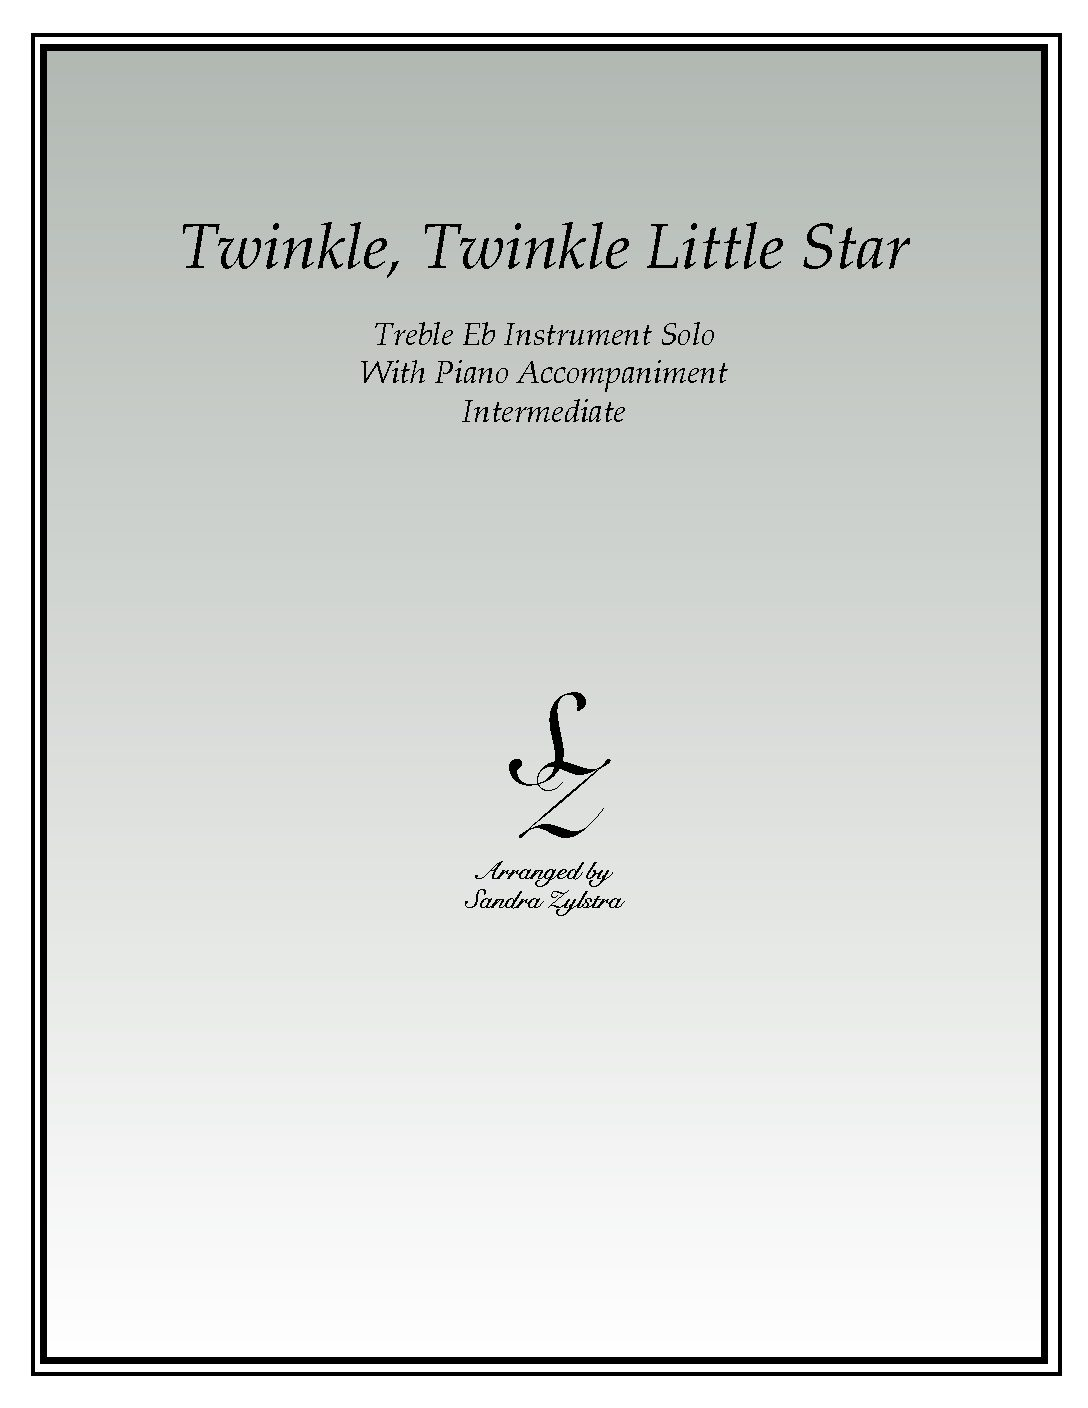 Twinkle, Twinkle Little Star -Treble Eb Instrument Solo